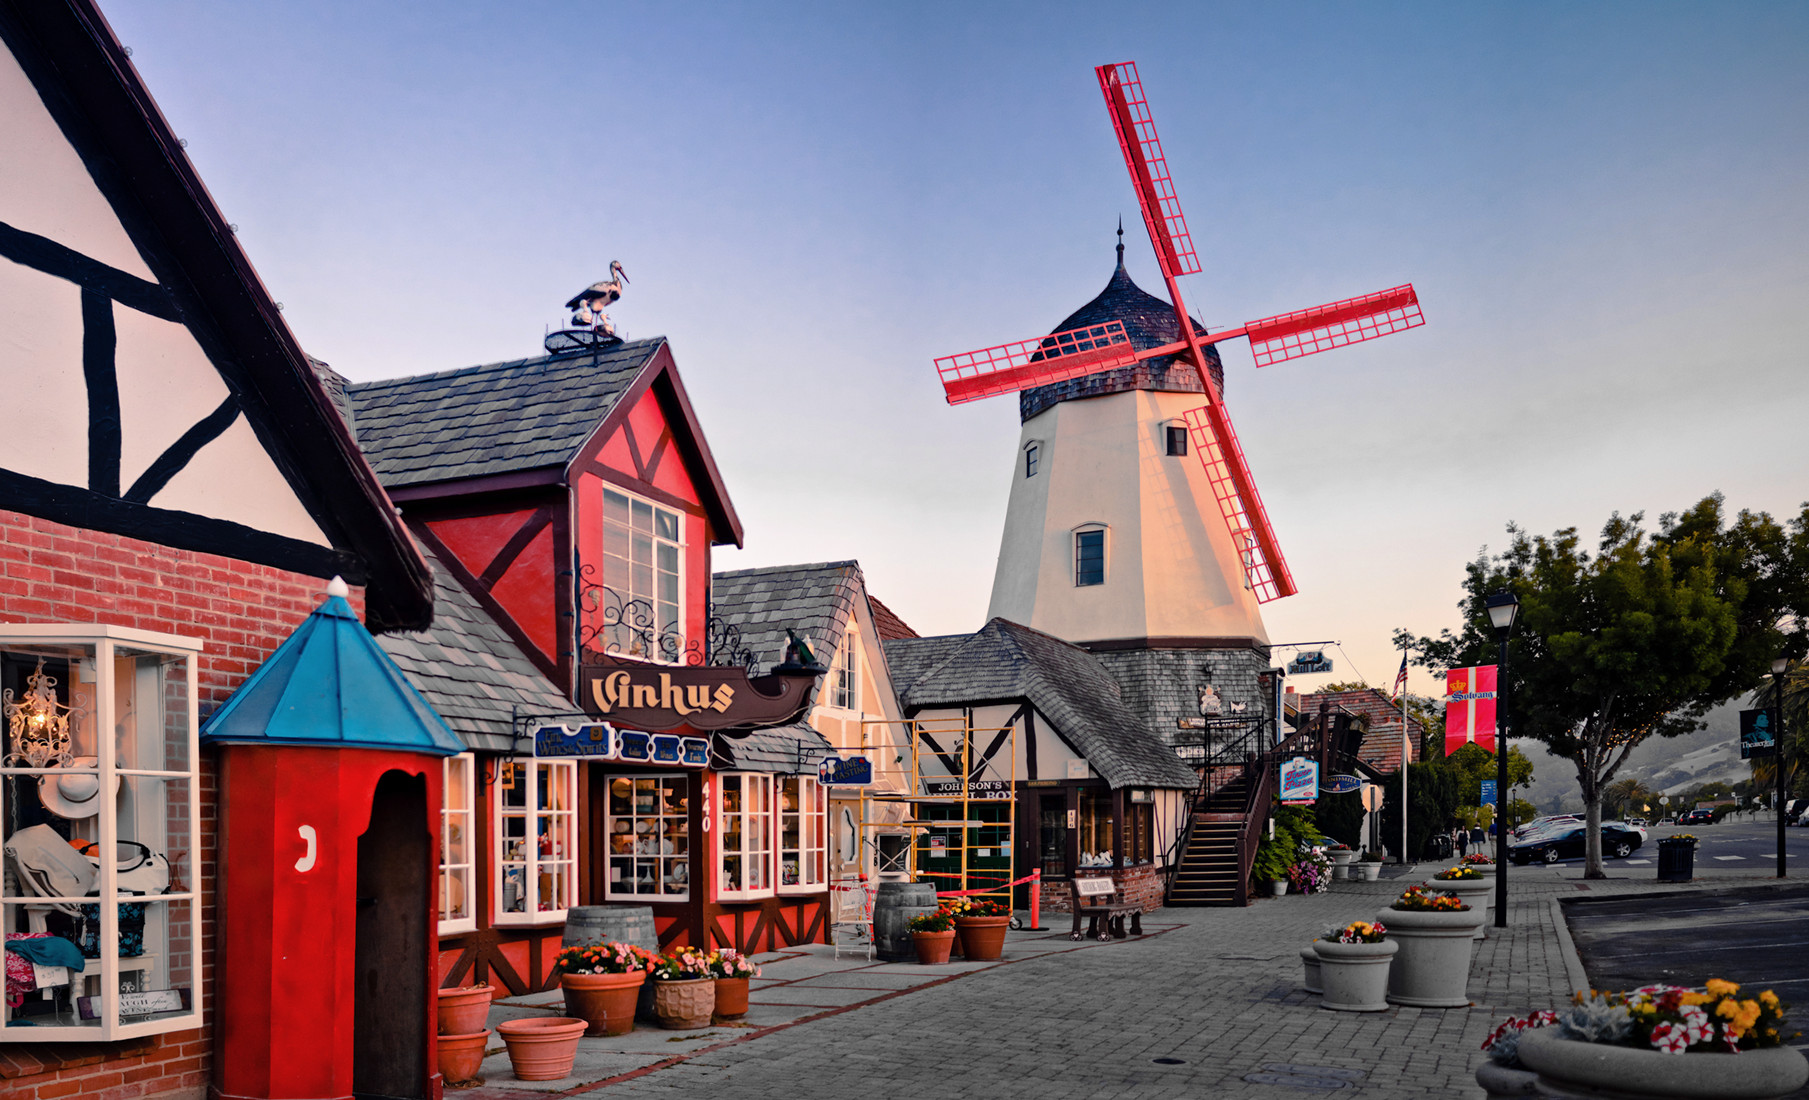 Danish windmills in Solvang, California